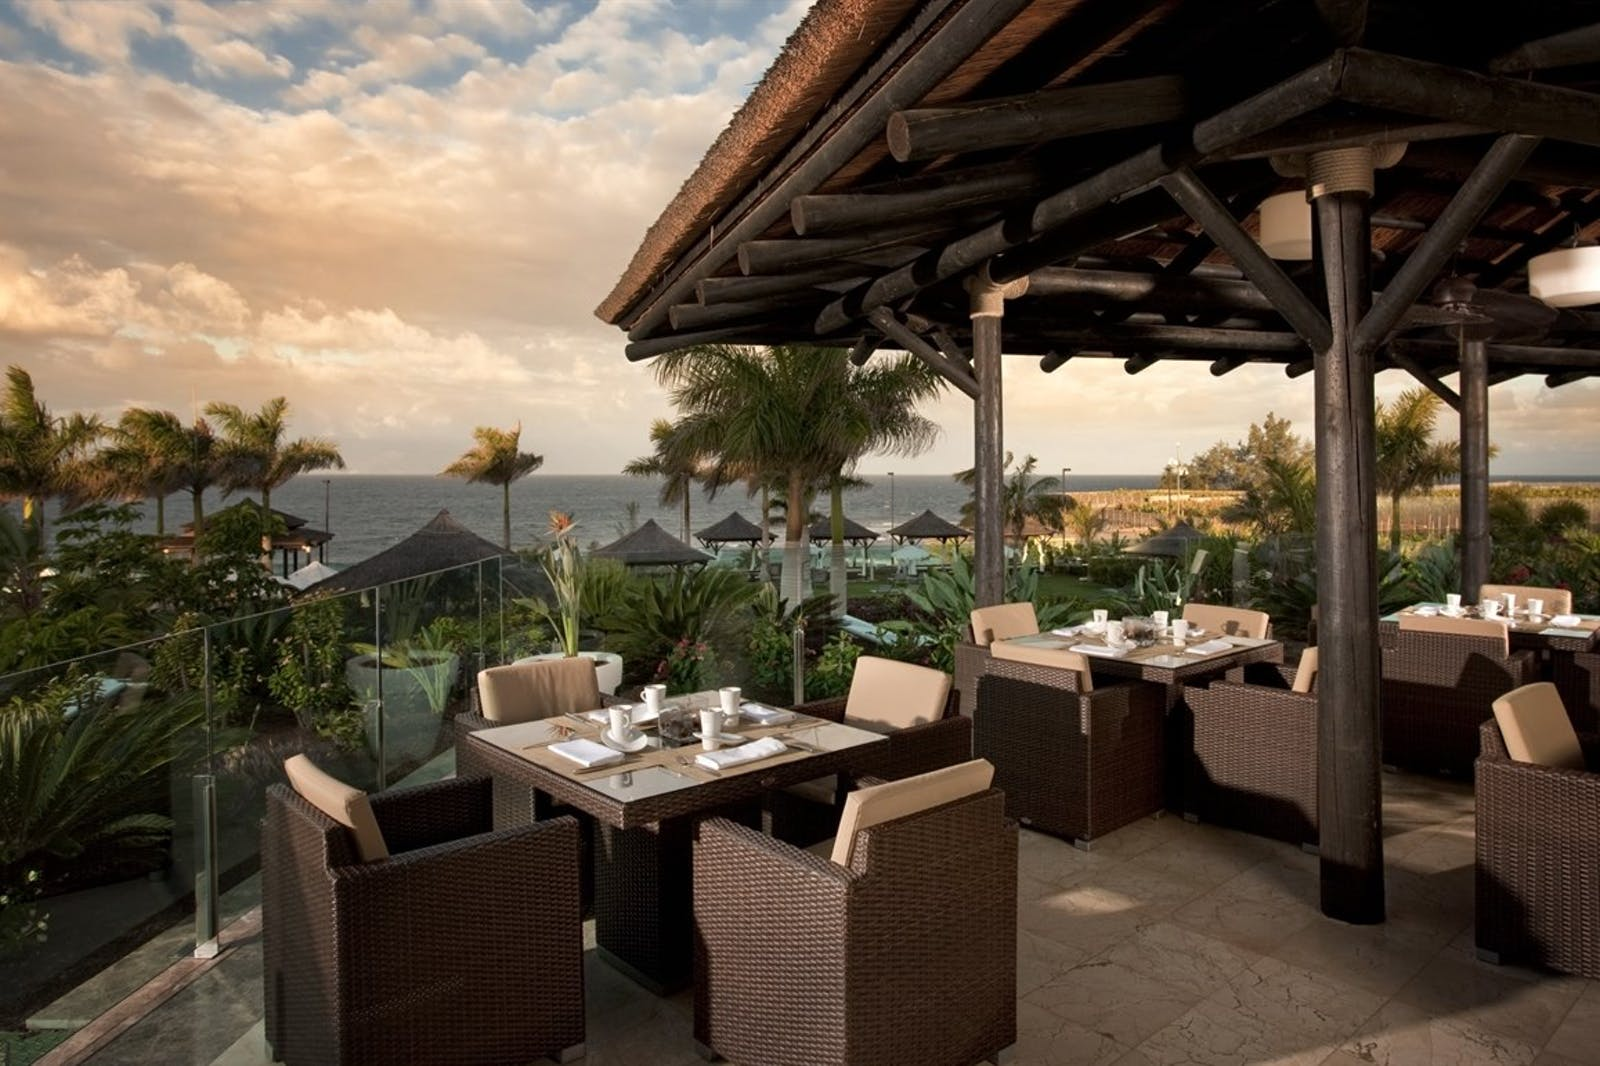 Terrace Restaurant at RedLevel at Gran Melia Palacio de Isora, Tenerife